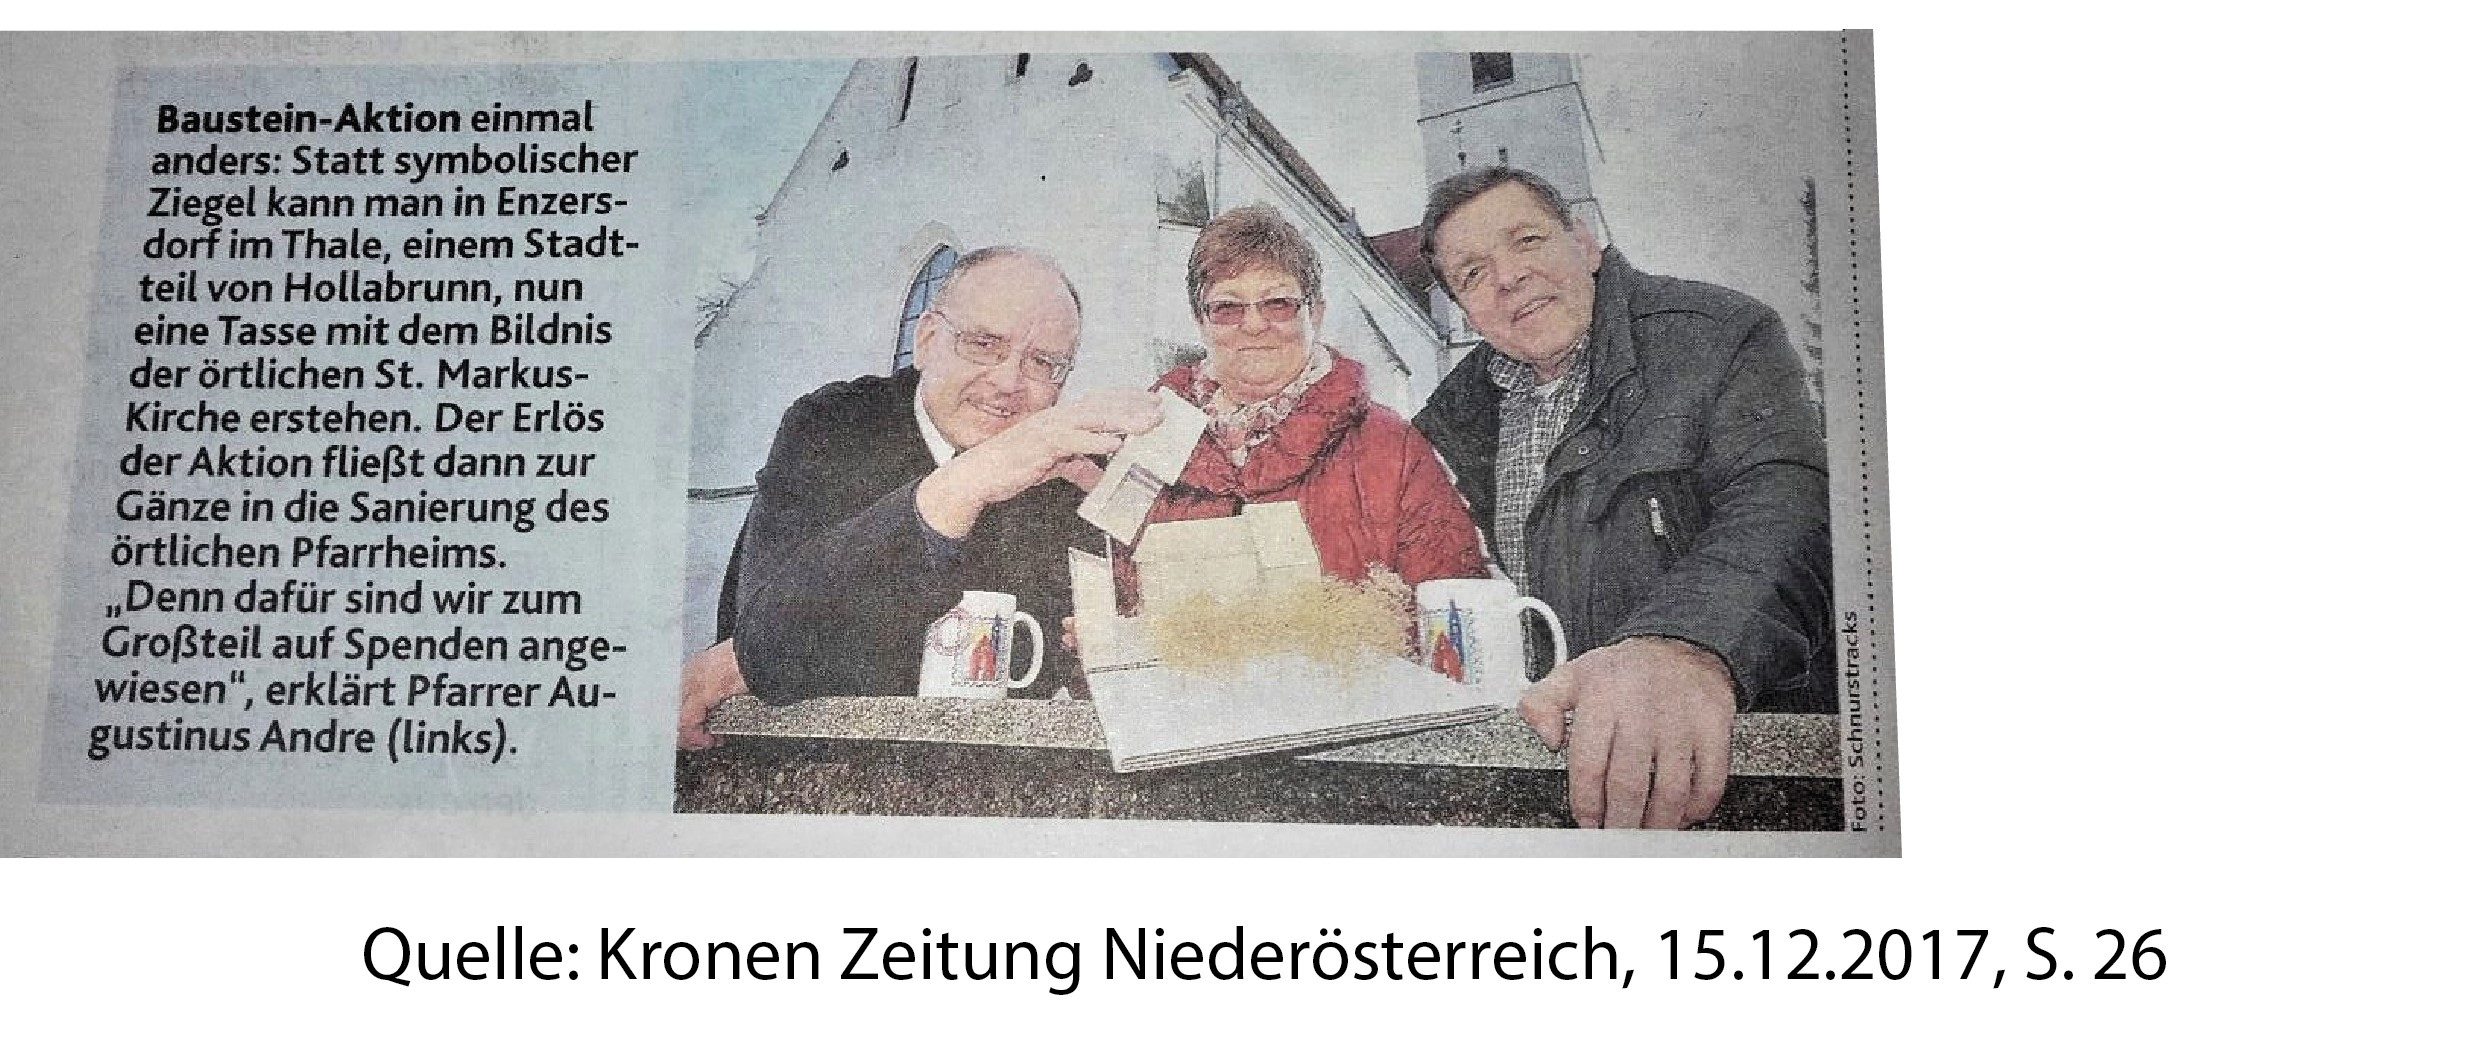 Schnurstracks Medienbericht Krone 15.12.2017